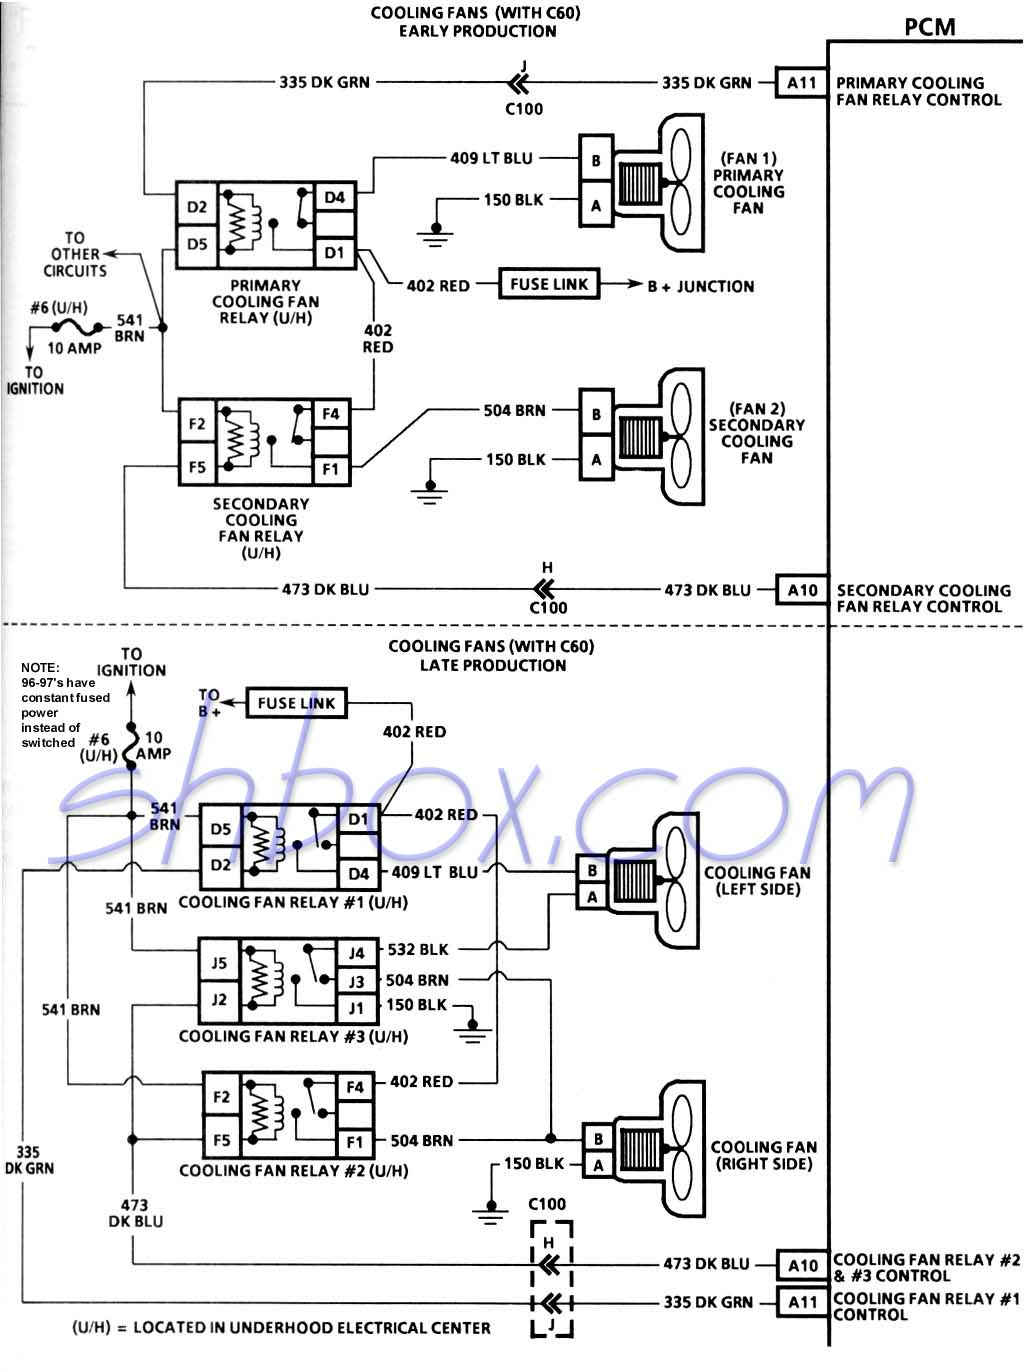 Wiring Diagram For Range Rover P38 Data Diagrams Schematics 99 Cabrio Fuel Pump Relay Location Toyota Camry Seat